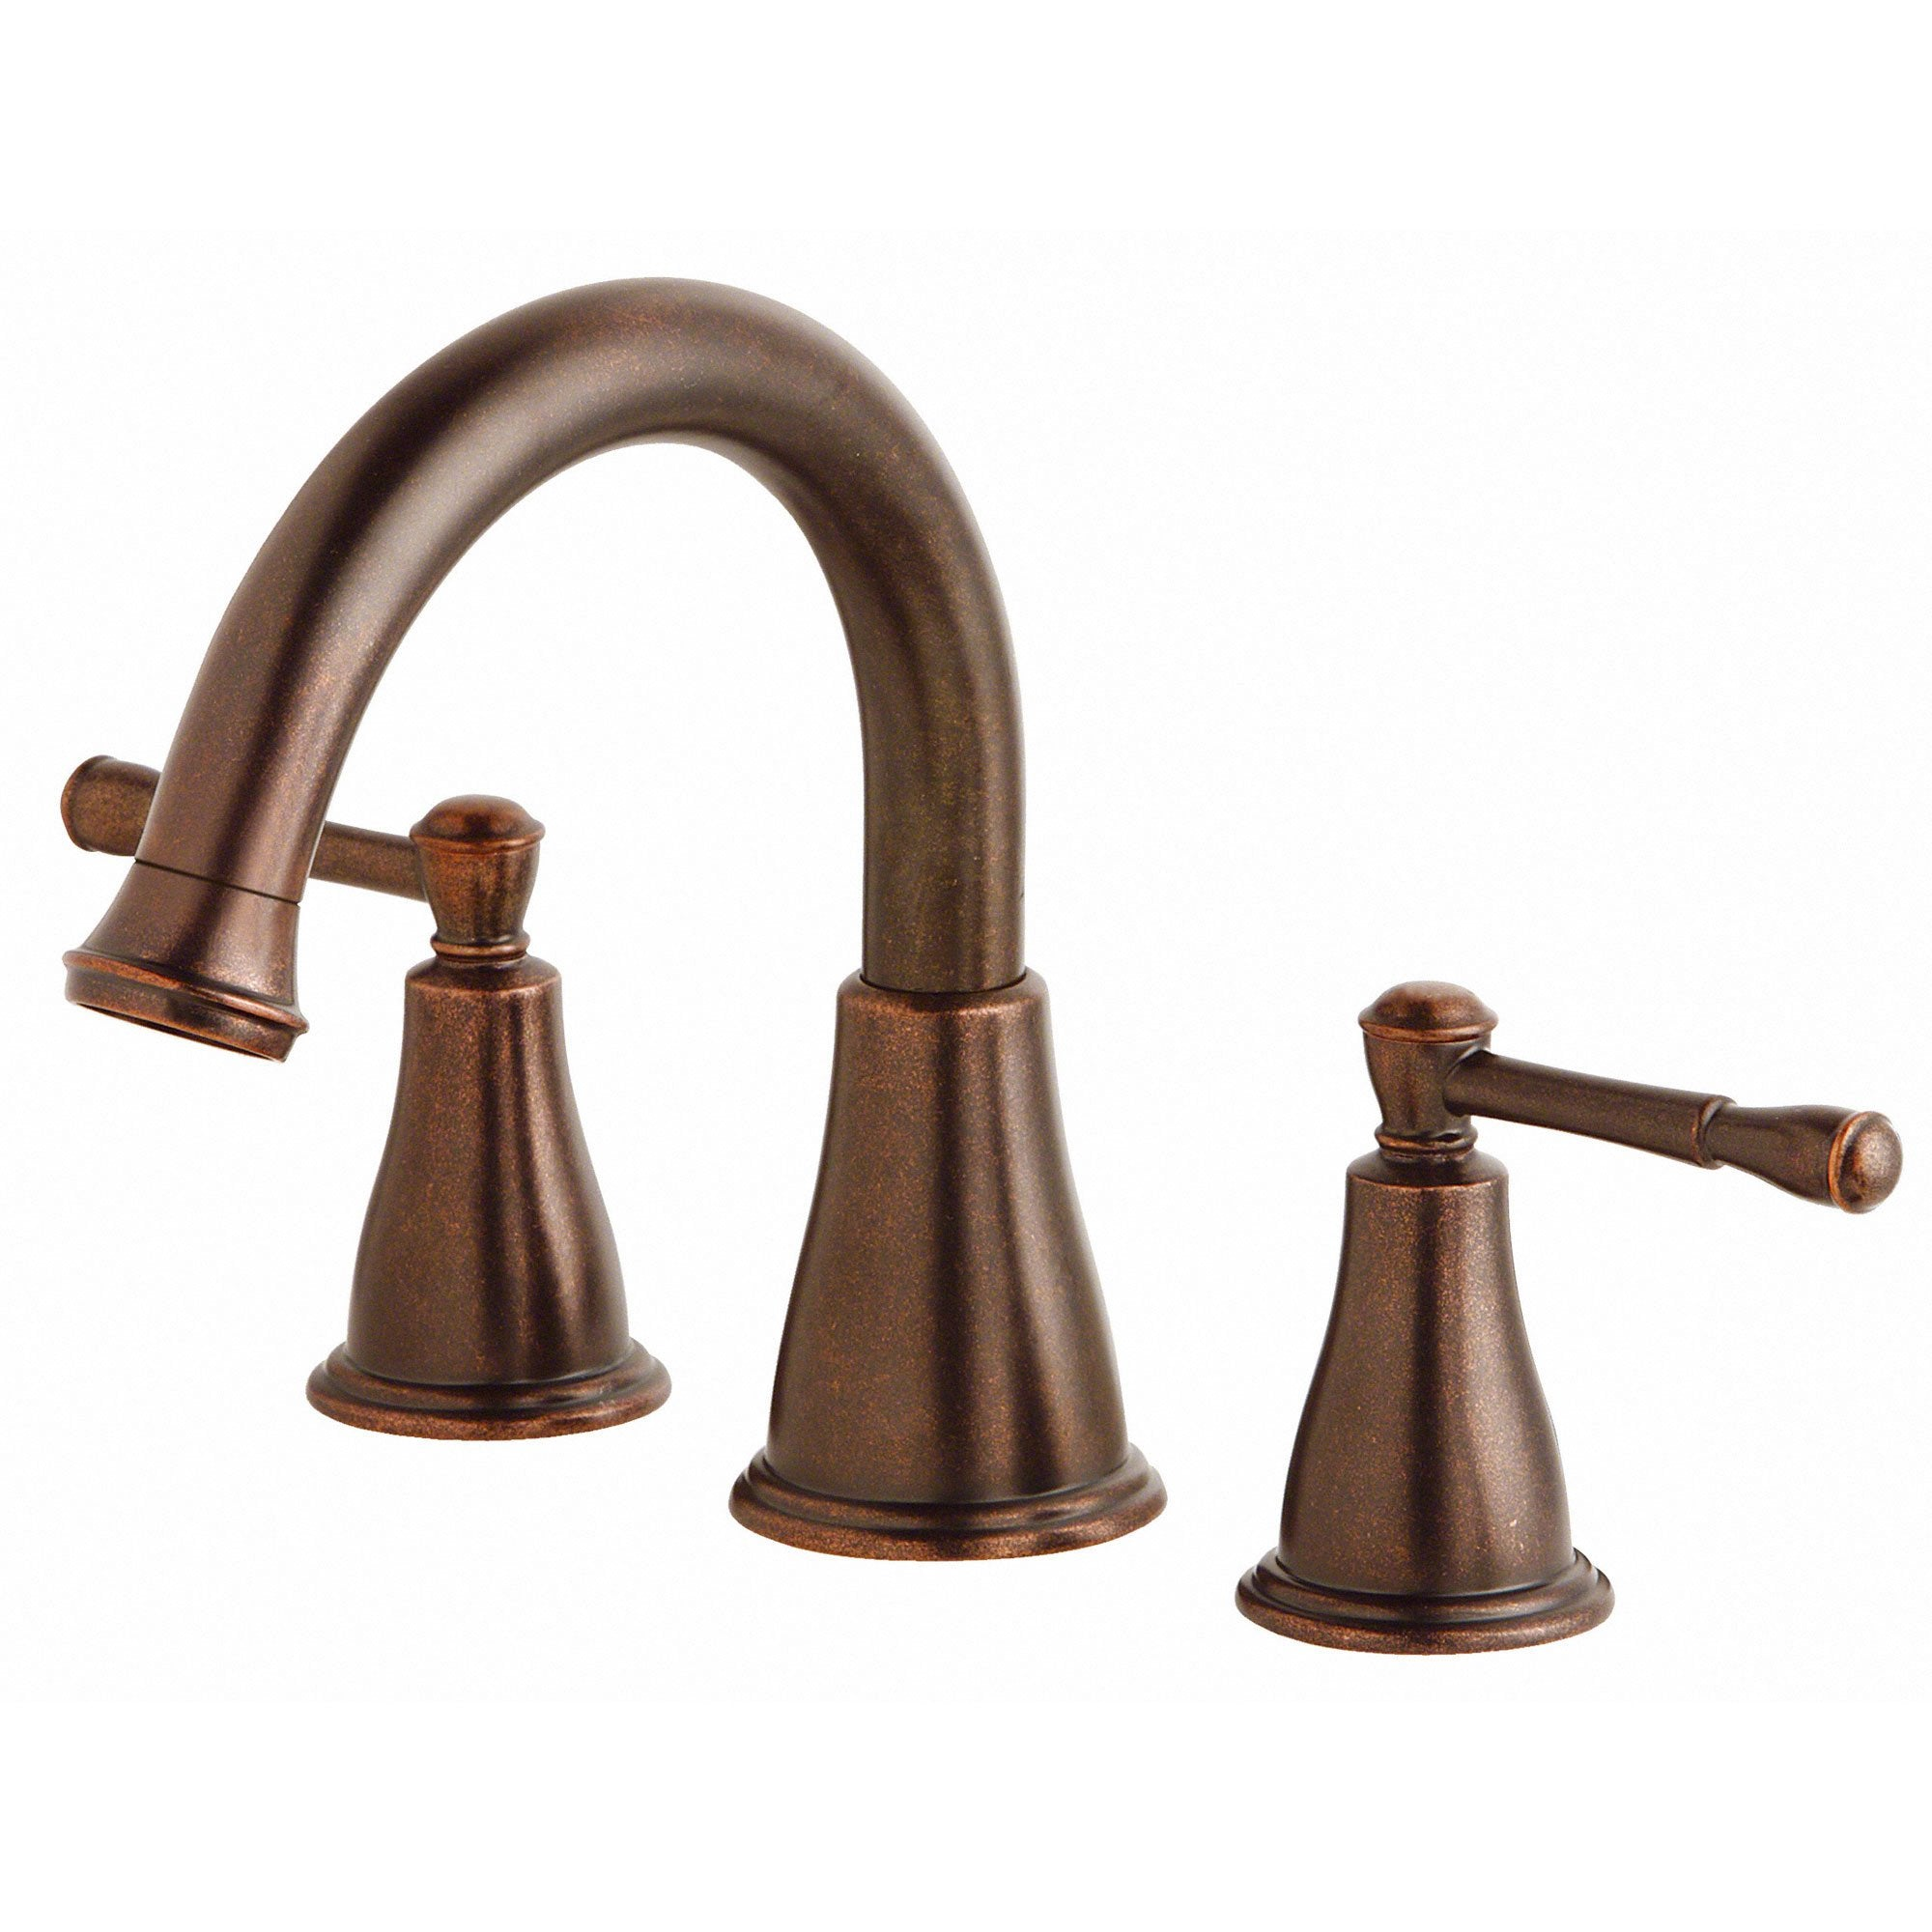 Danze Eastham Tumbled Bronze 2 Handle Roman Tub Filler Faucet INCLUDES Rough-in Valve